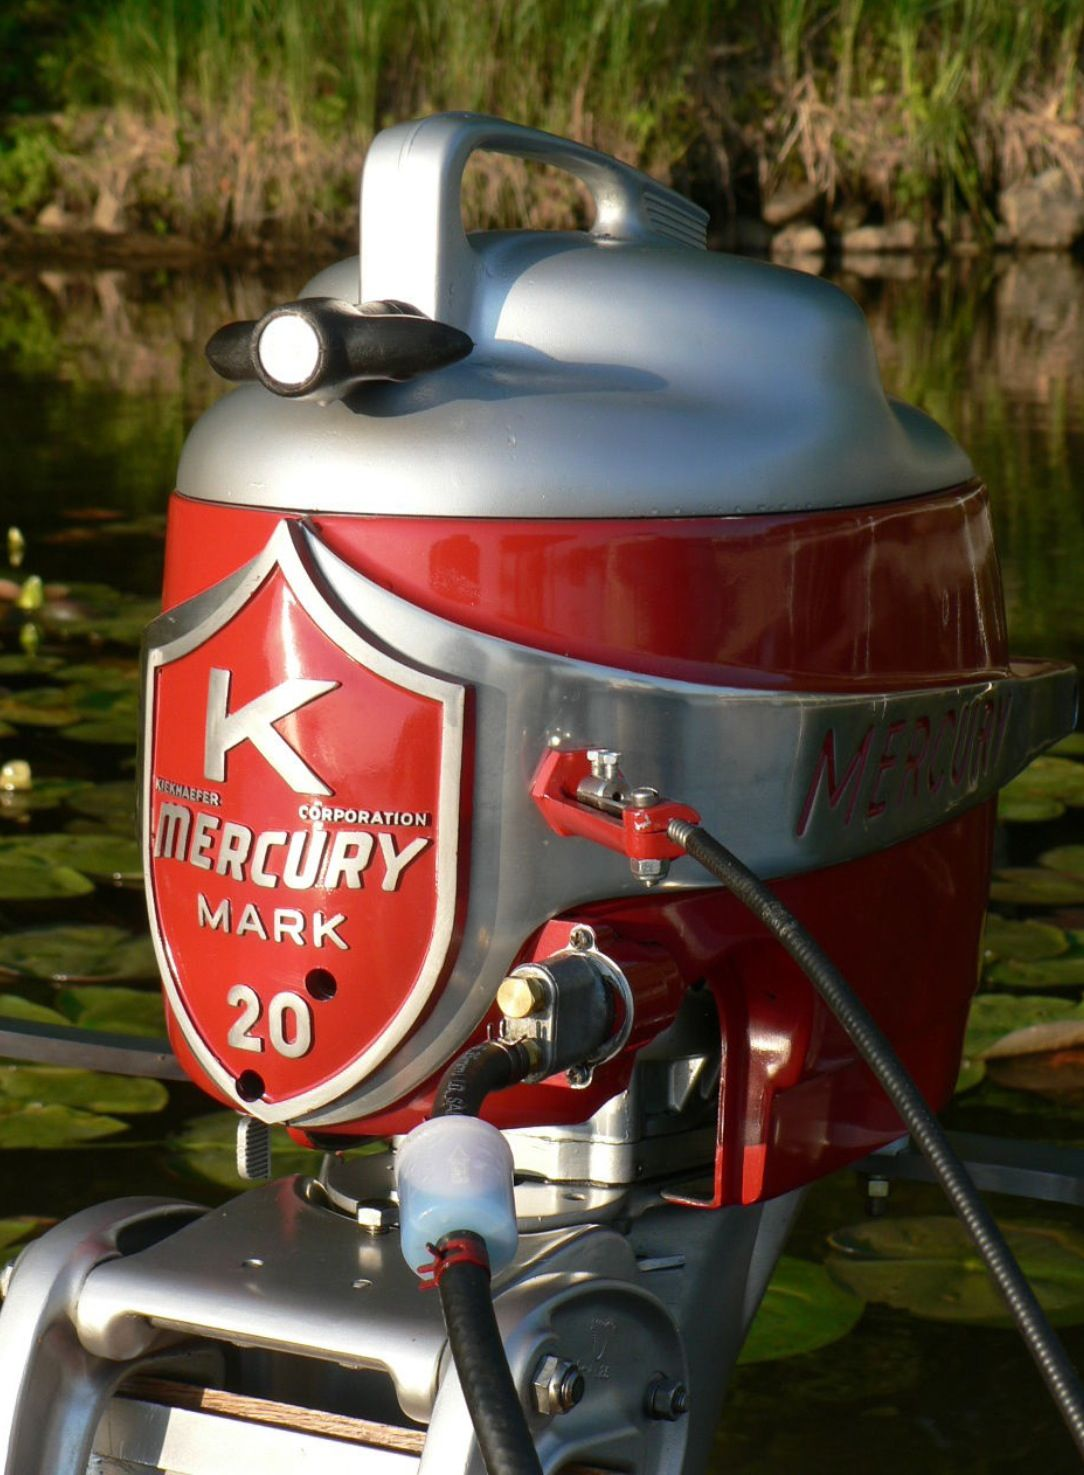 Mercury mark 20 outboard motor outboard pinterest for Vintage mercury outboard motors